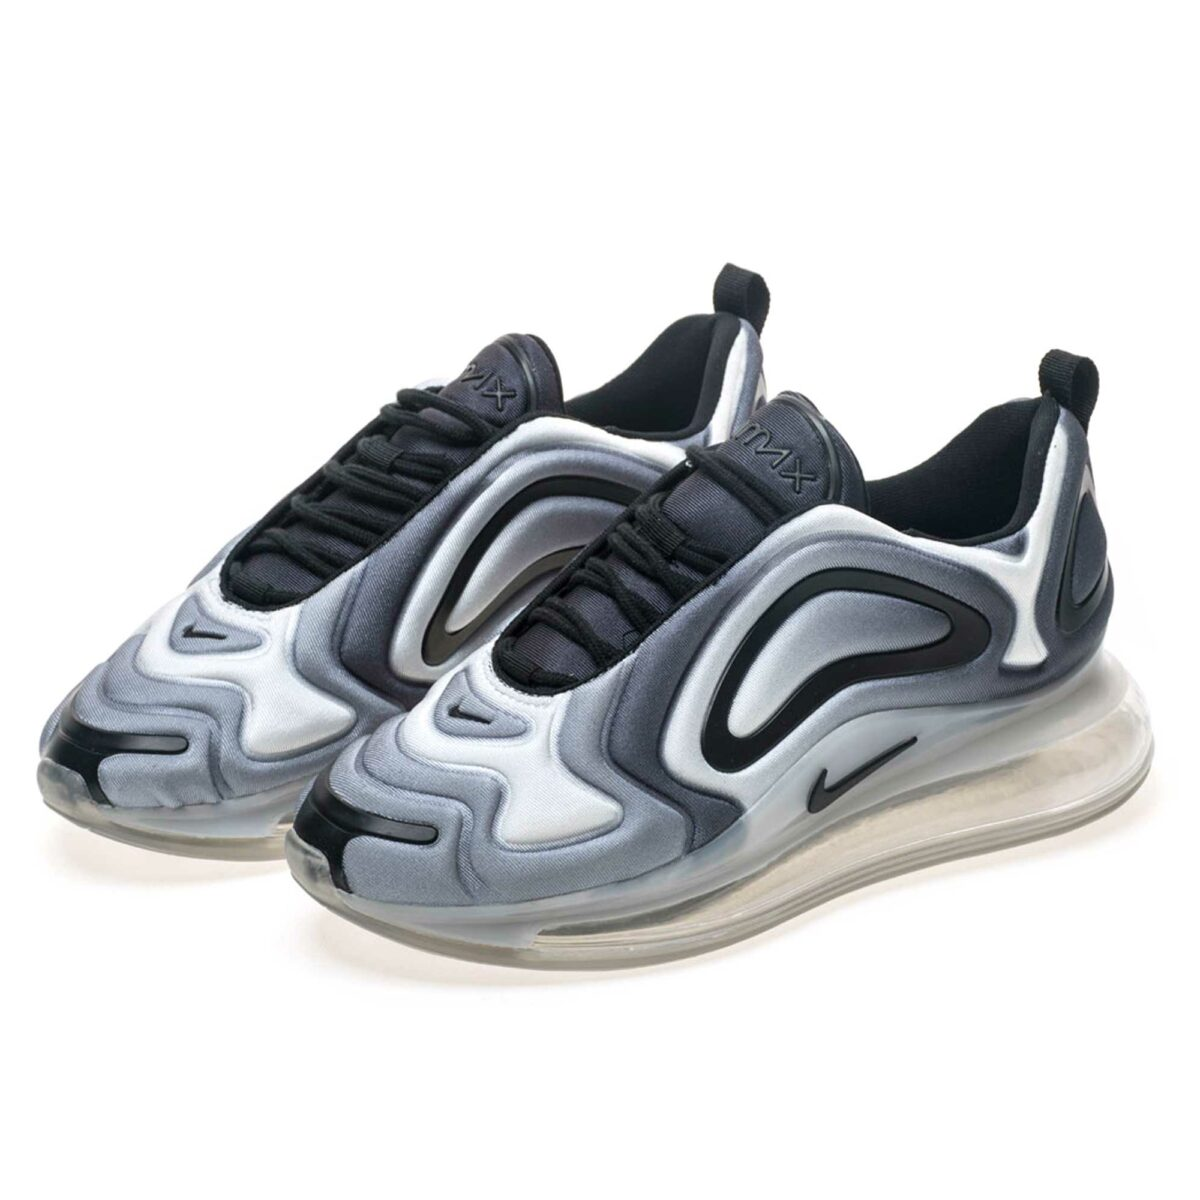 nike air max 720 carbone grey black AR9293_002 купить